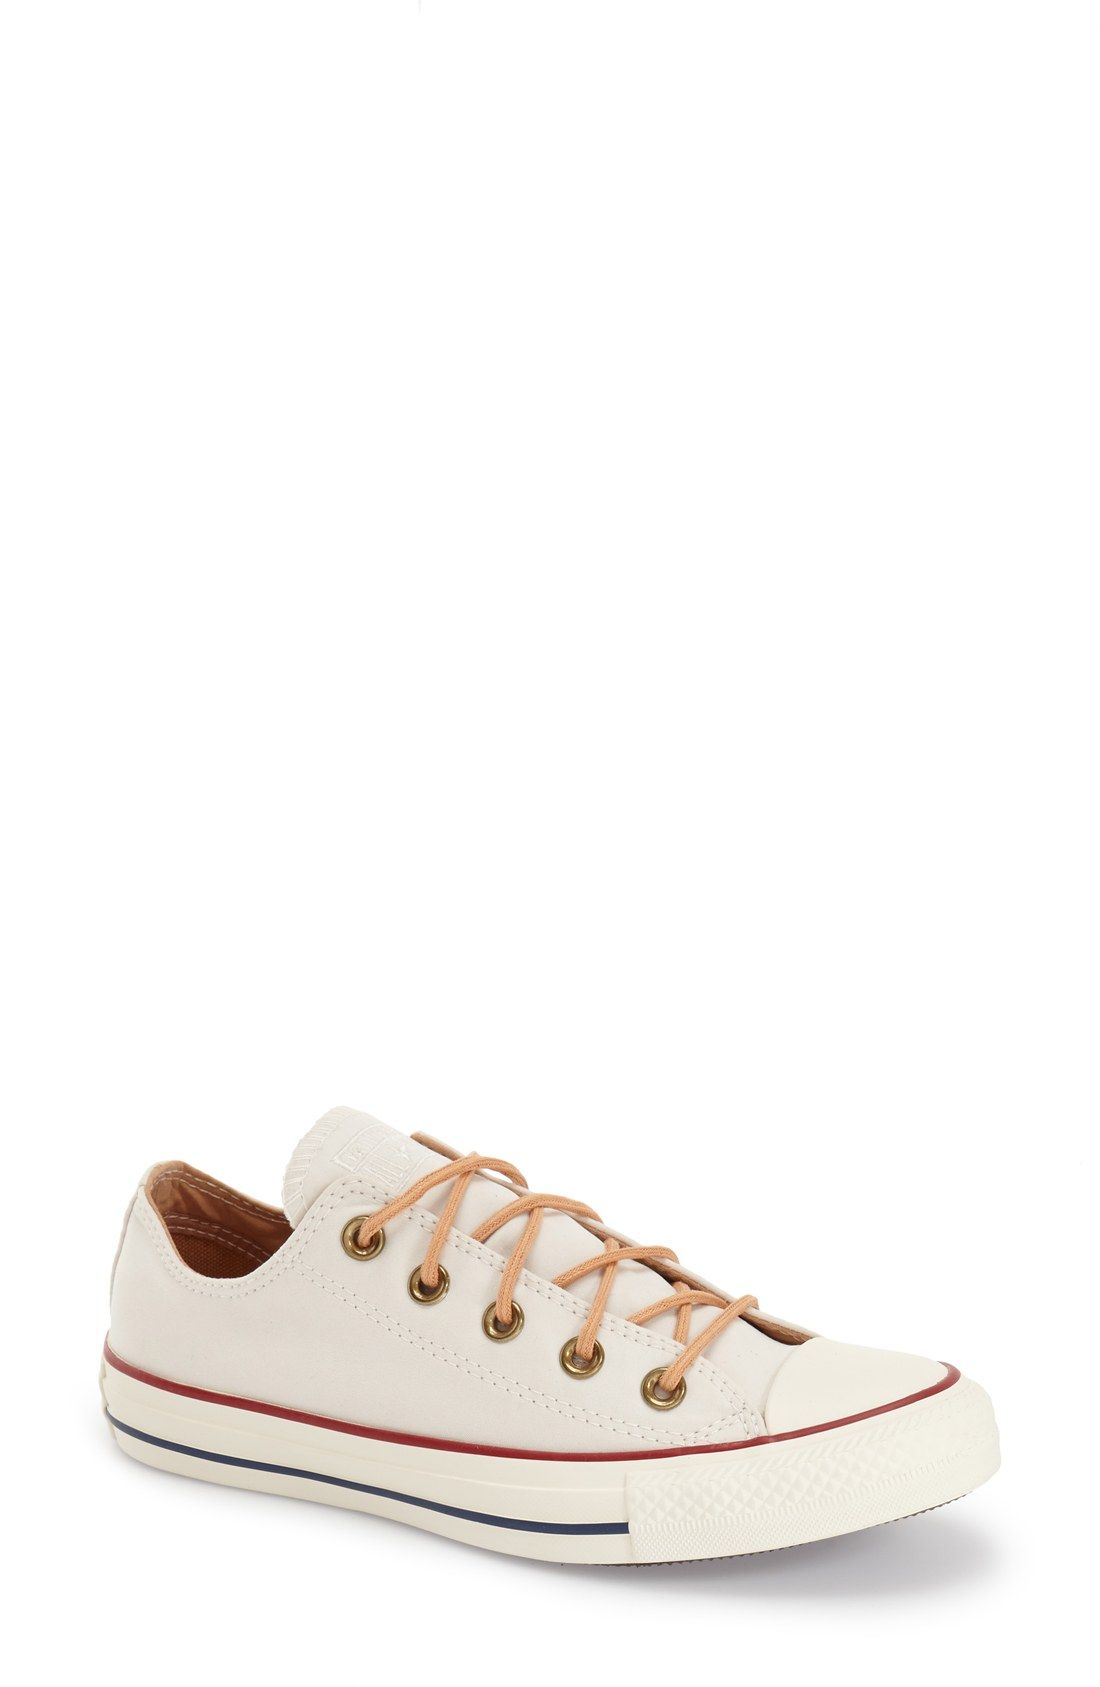 converse chuck taylor all star peached canvas